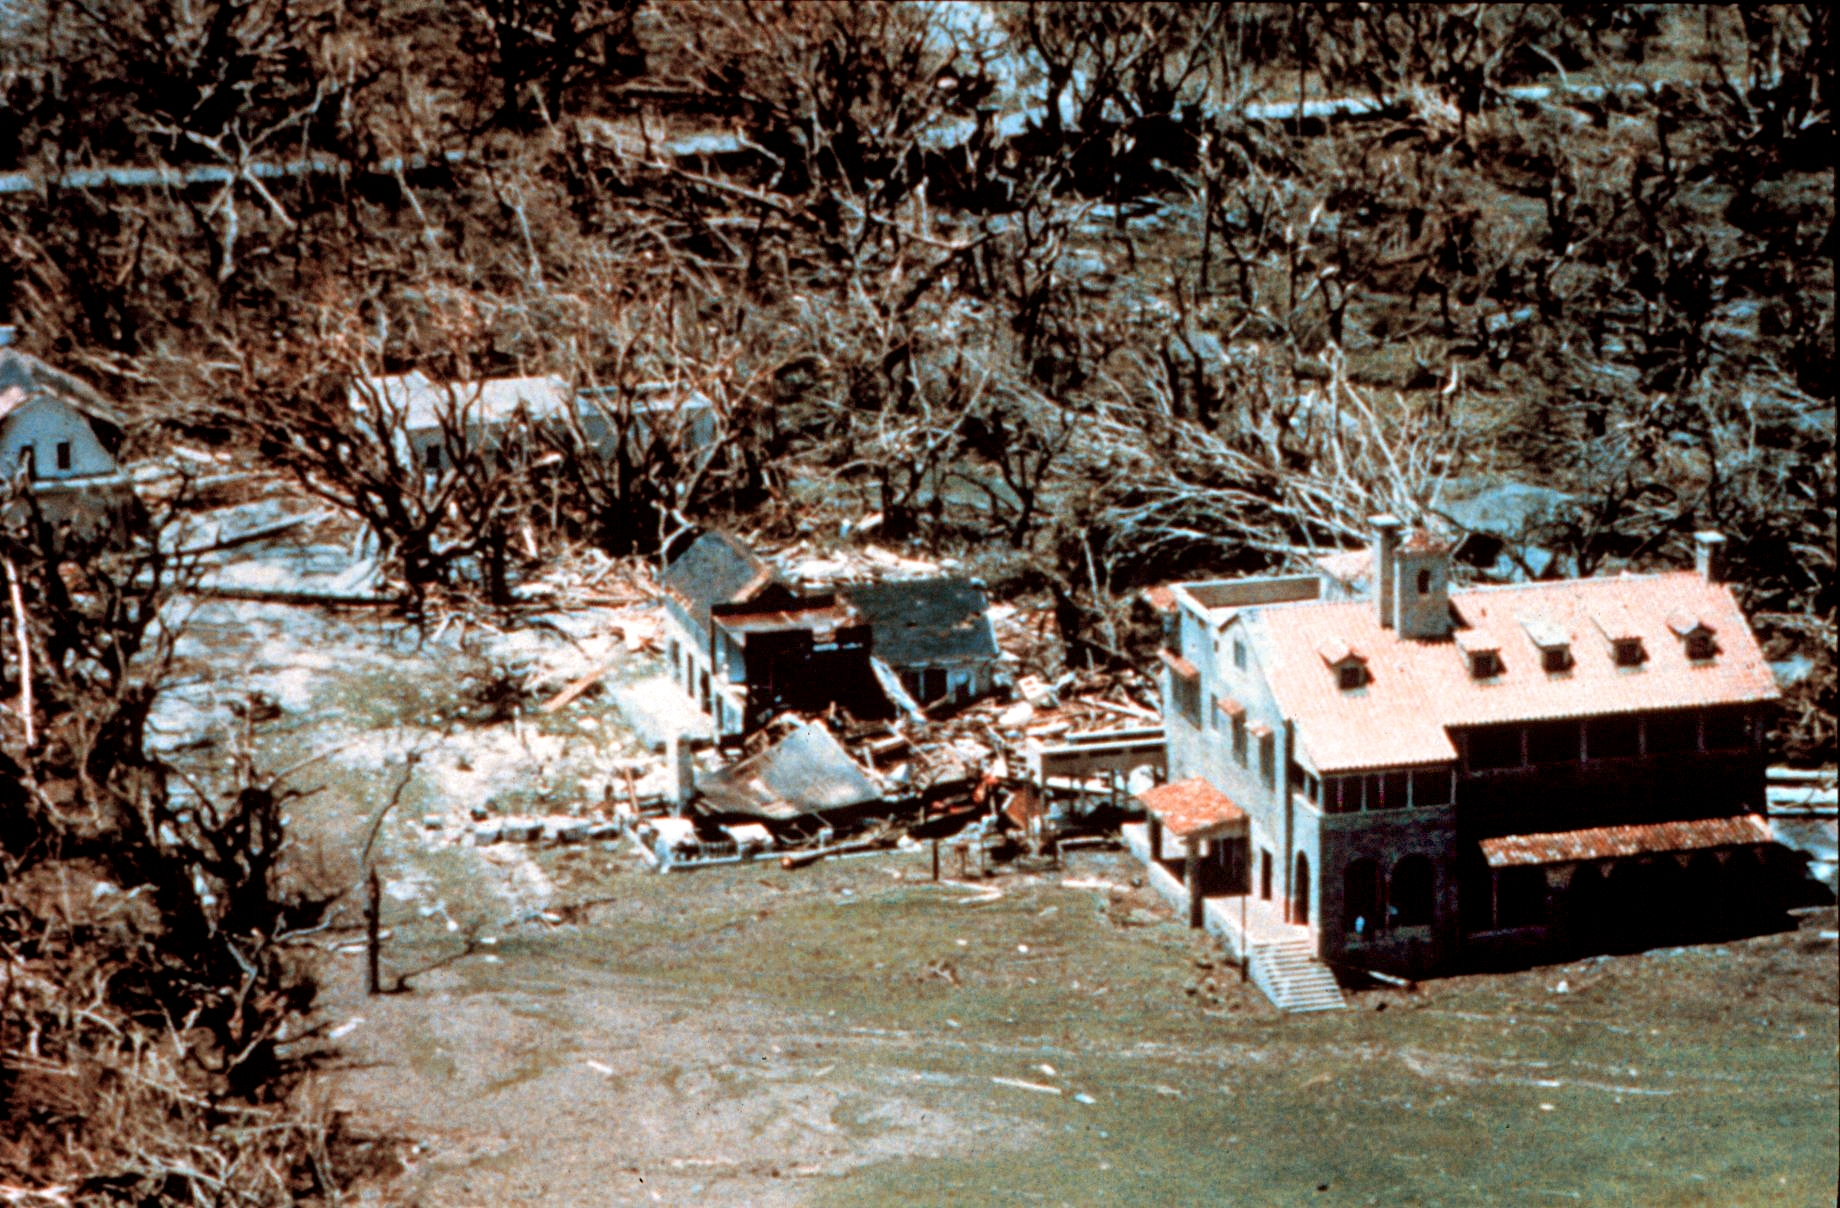 Wea00529_-_Hurricane_Andrew_-_Buildings_